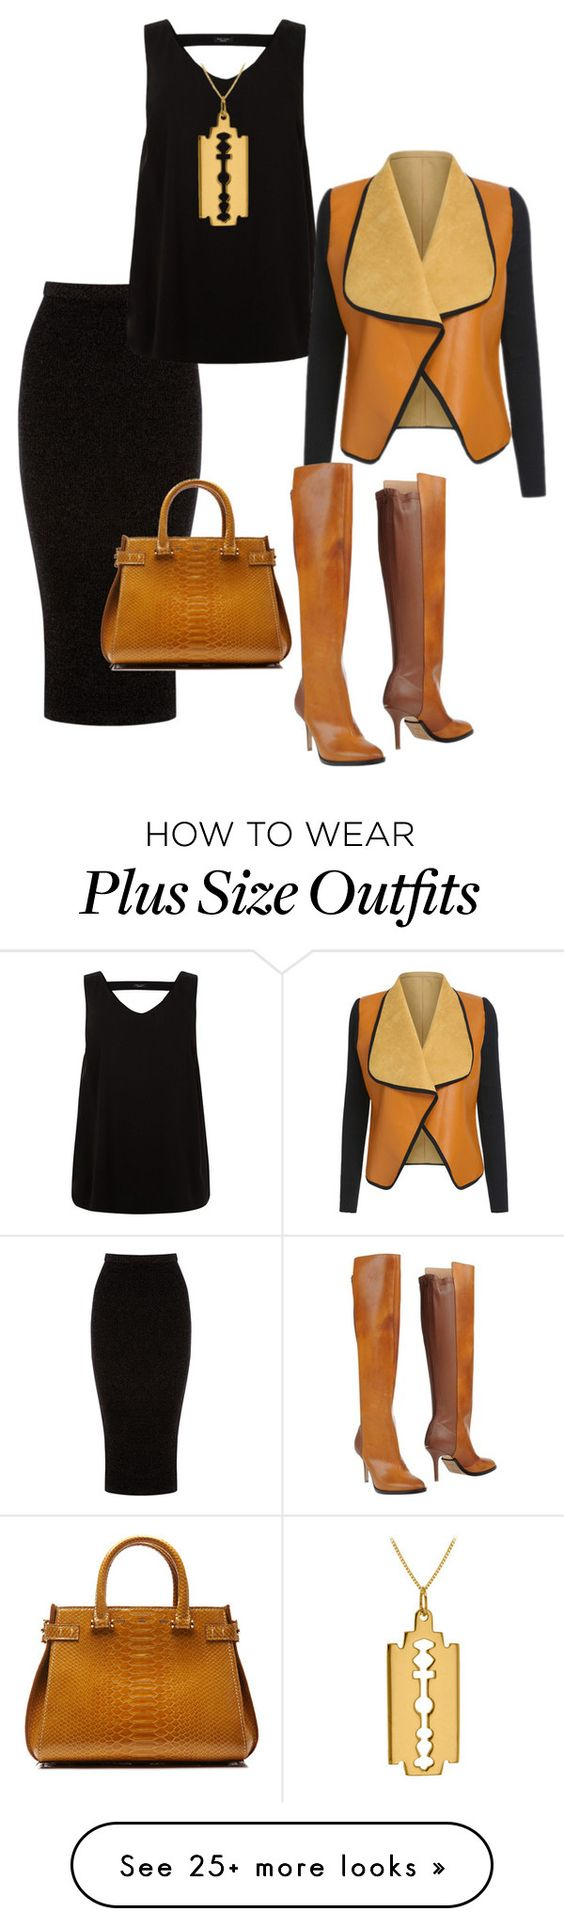 """Untitled #1597"" by styledbycharlieb on Polyvore featuring mode, Warehouse, Maison Margiela, VBH et True Rocks"